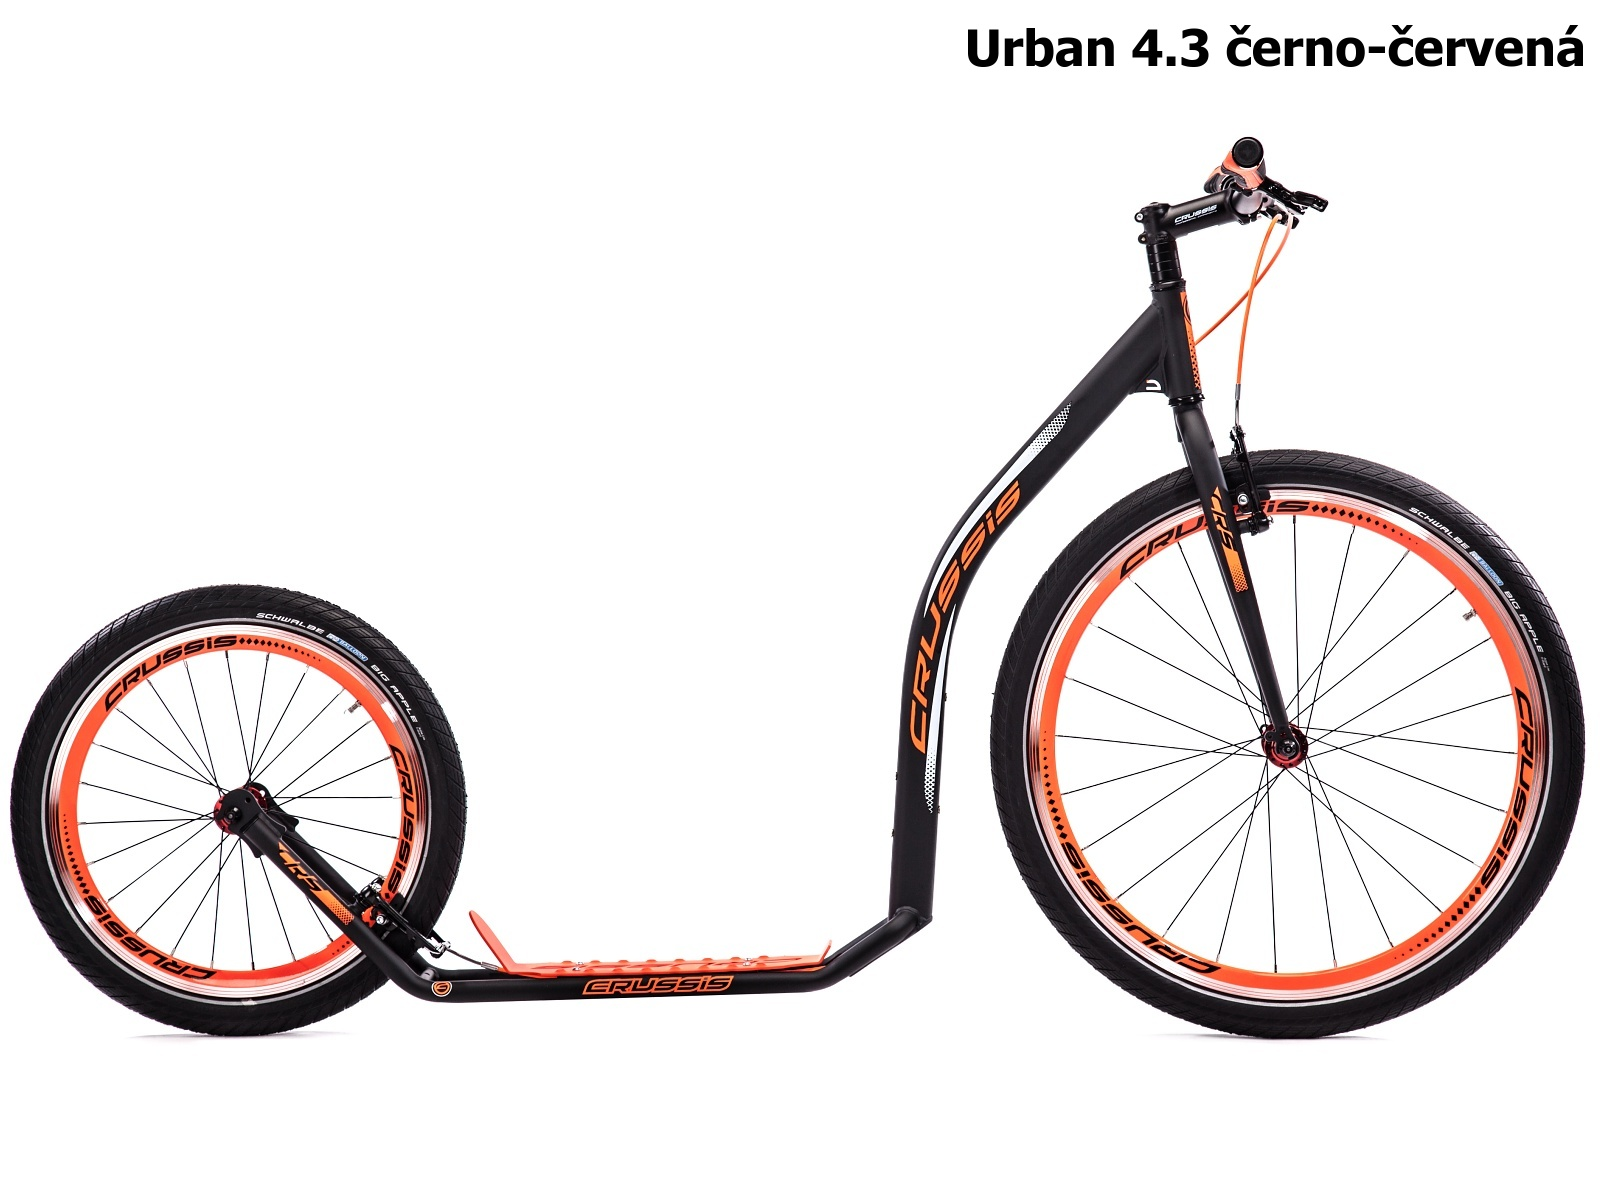 Crussis Urban 4.3